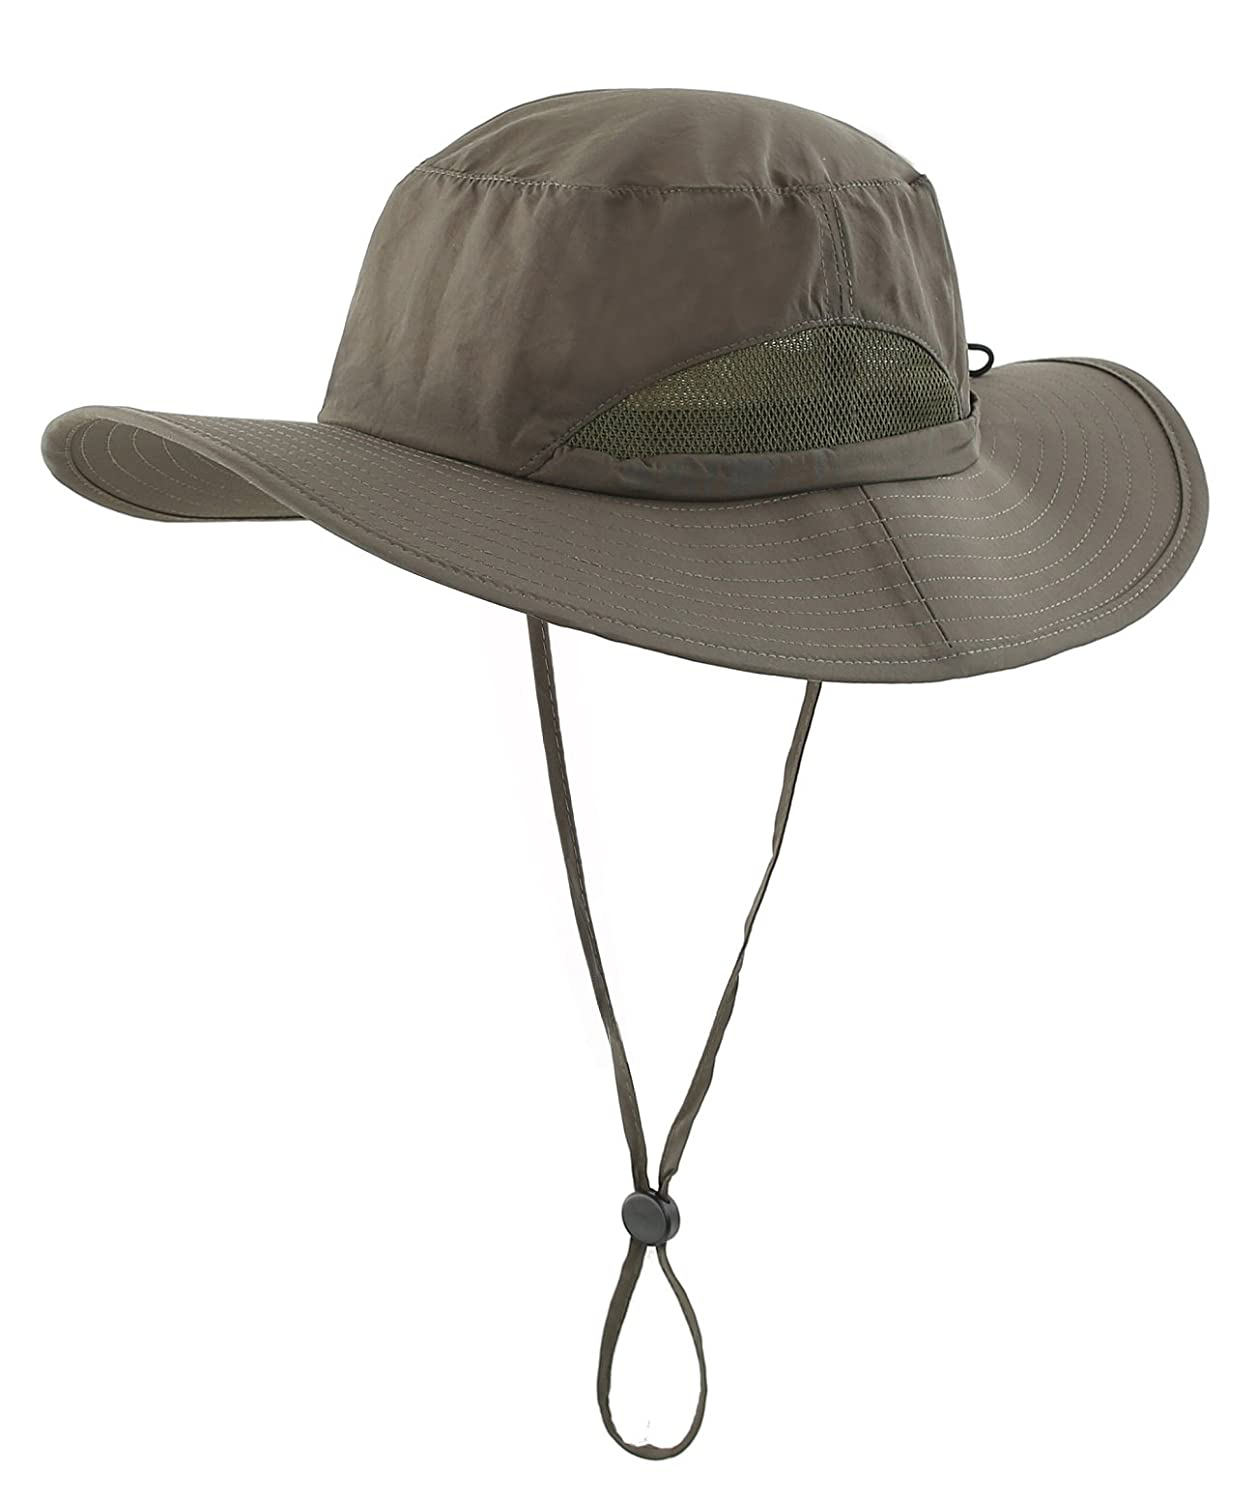 Decentron Daily Outdoor Sun Cap Adjustable Mesh Bucket Hat Boonie Fishing Hats